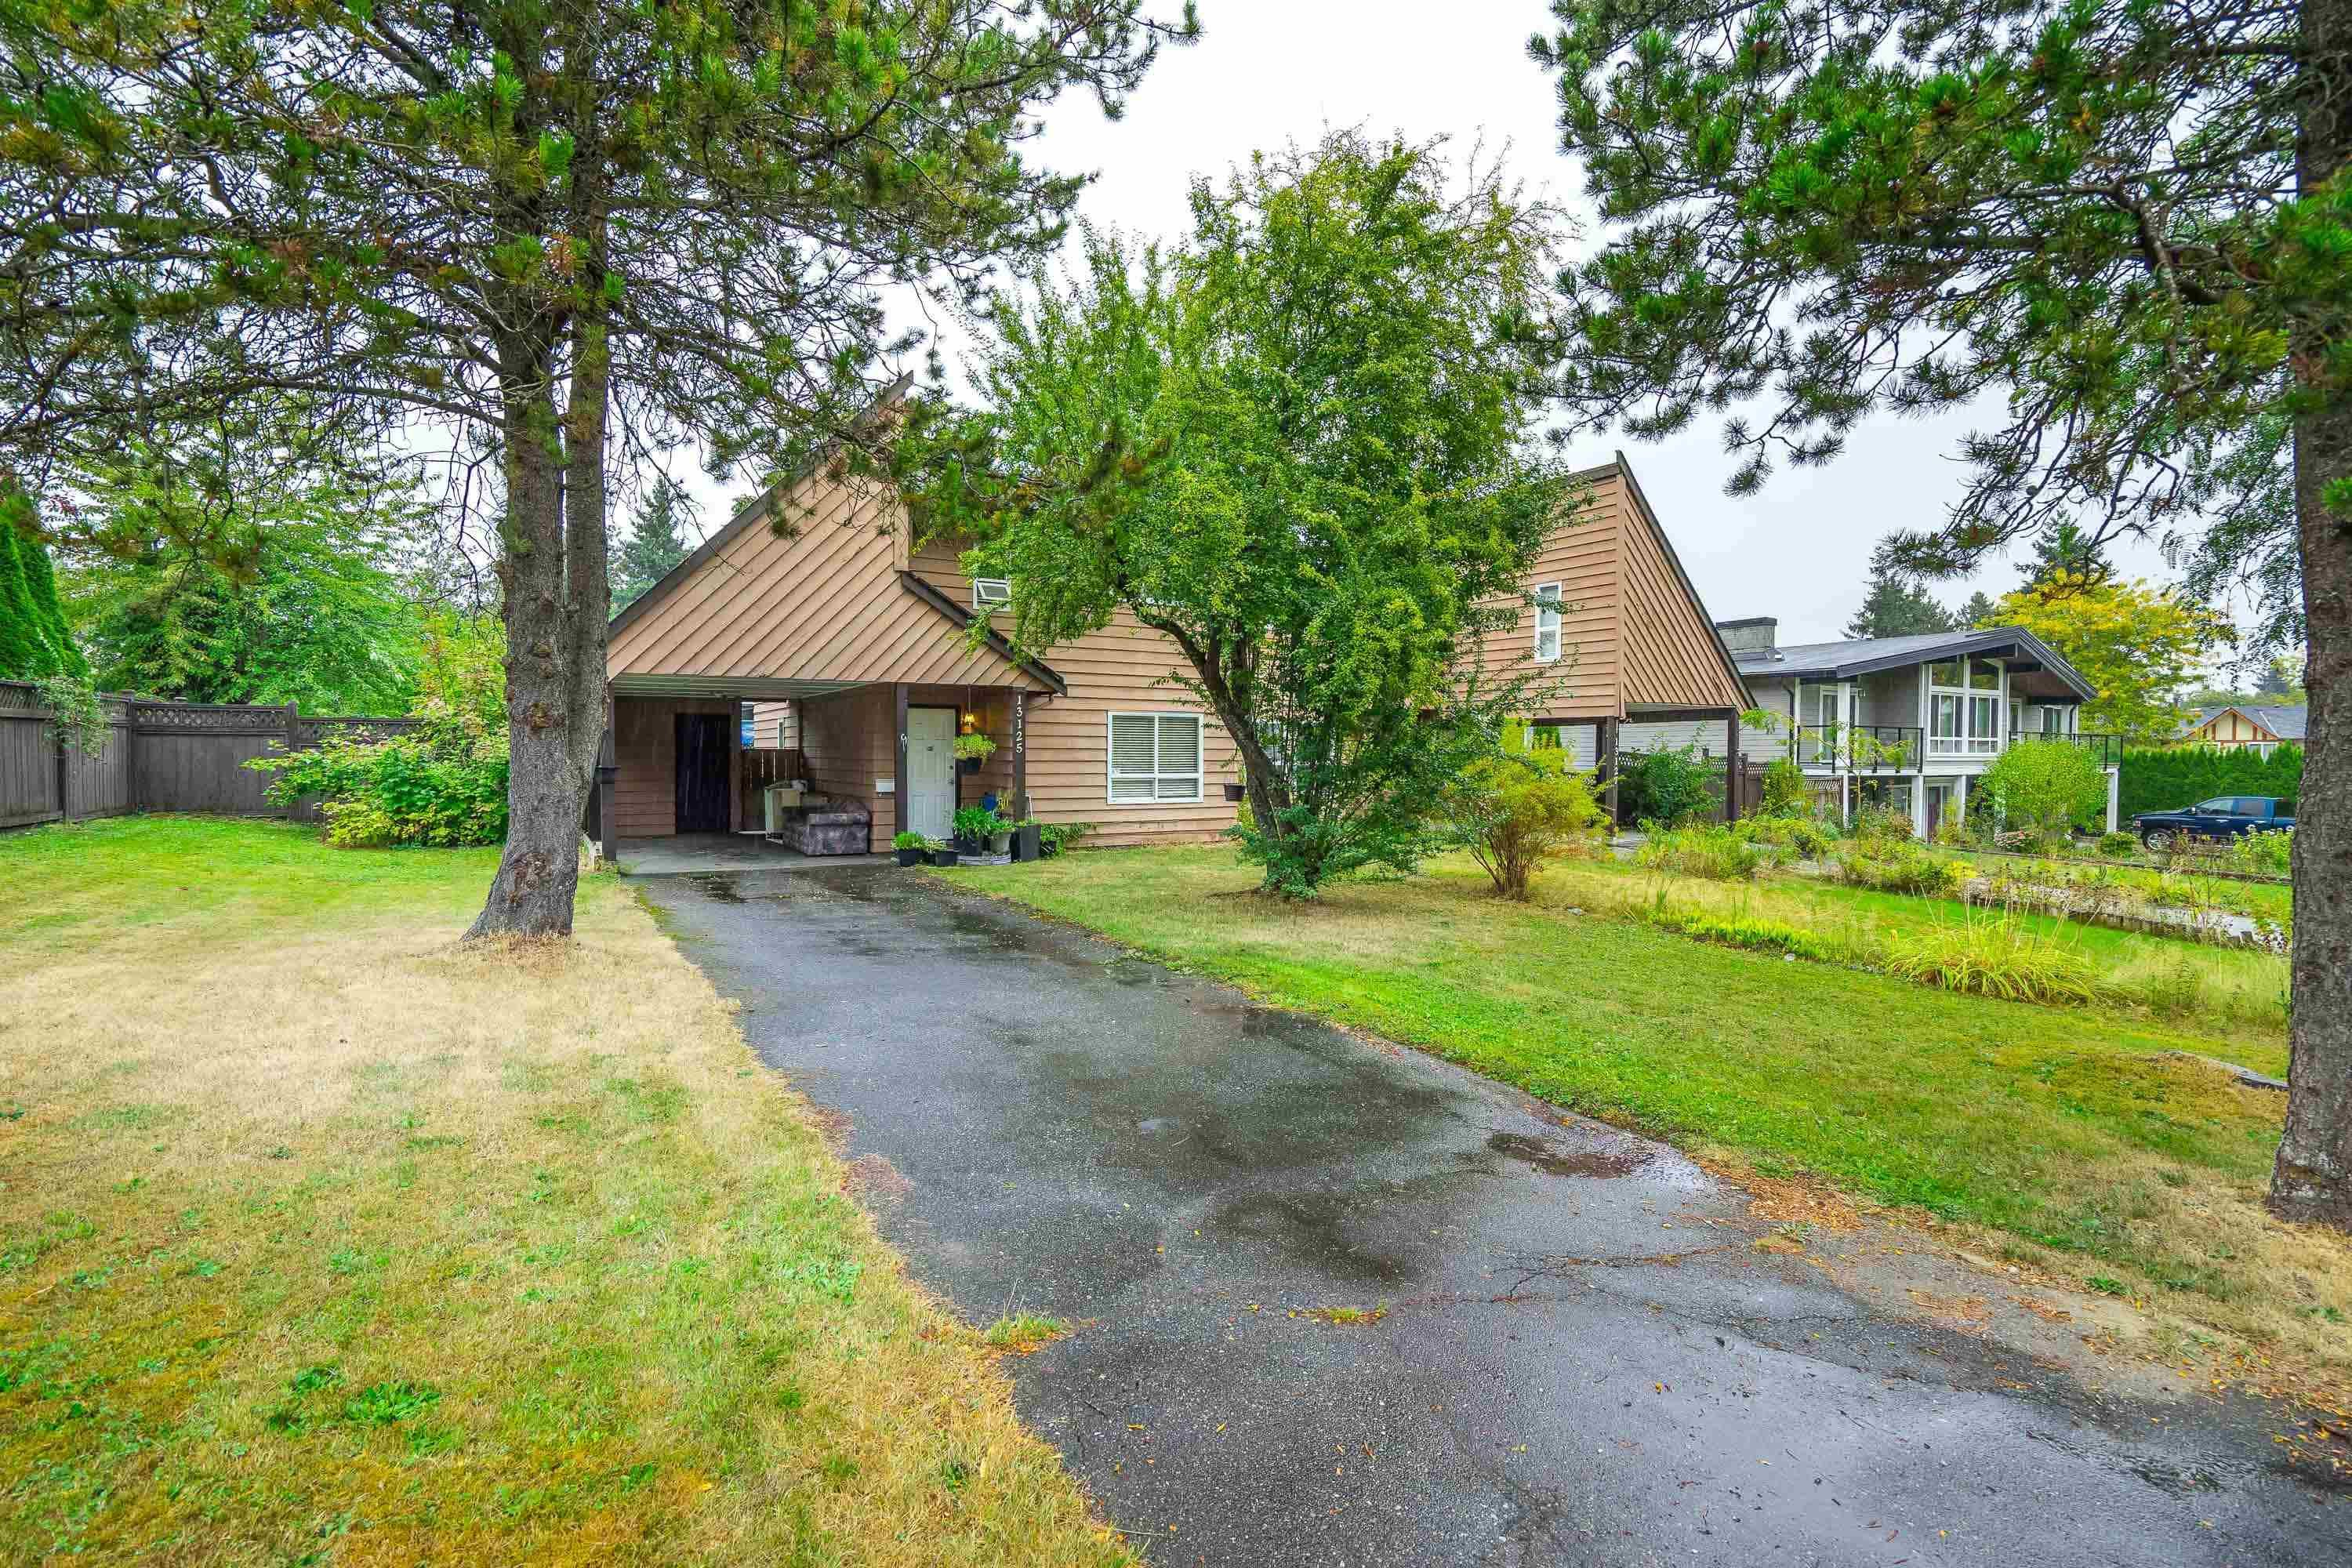 Main Photo: 13127 BALLOCH Drive in Surrey: Queen Mary Park Surrey Multi-Family Commercial for sale : MLS®# C8040279